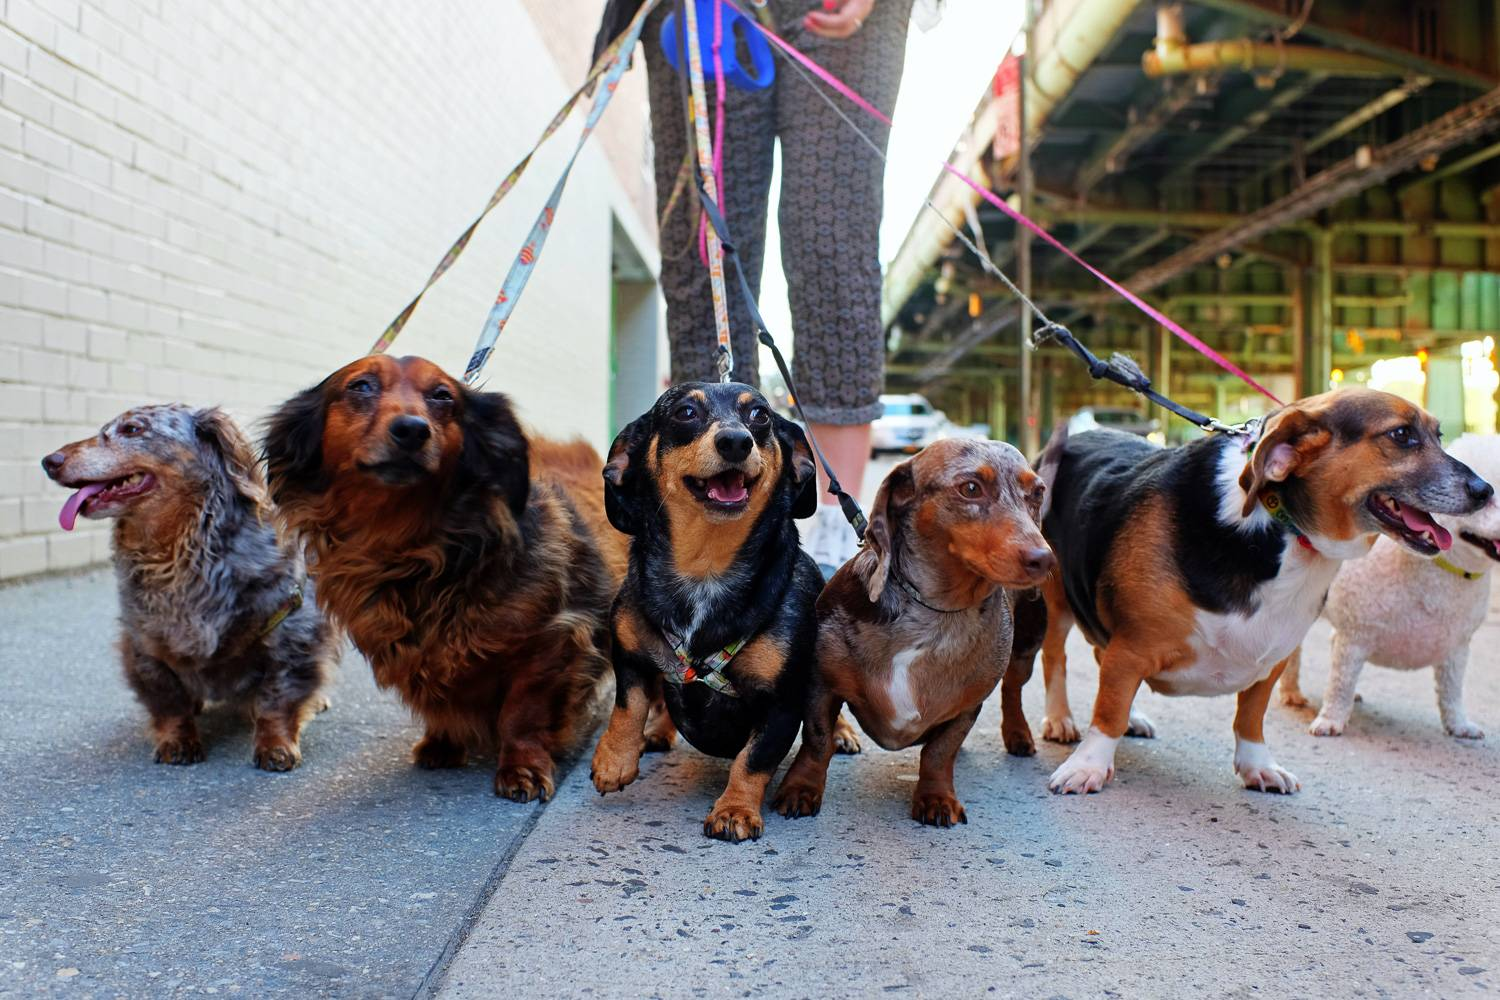 Image of dog walker with six dogs walking under elevated subway tracks